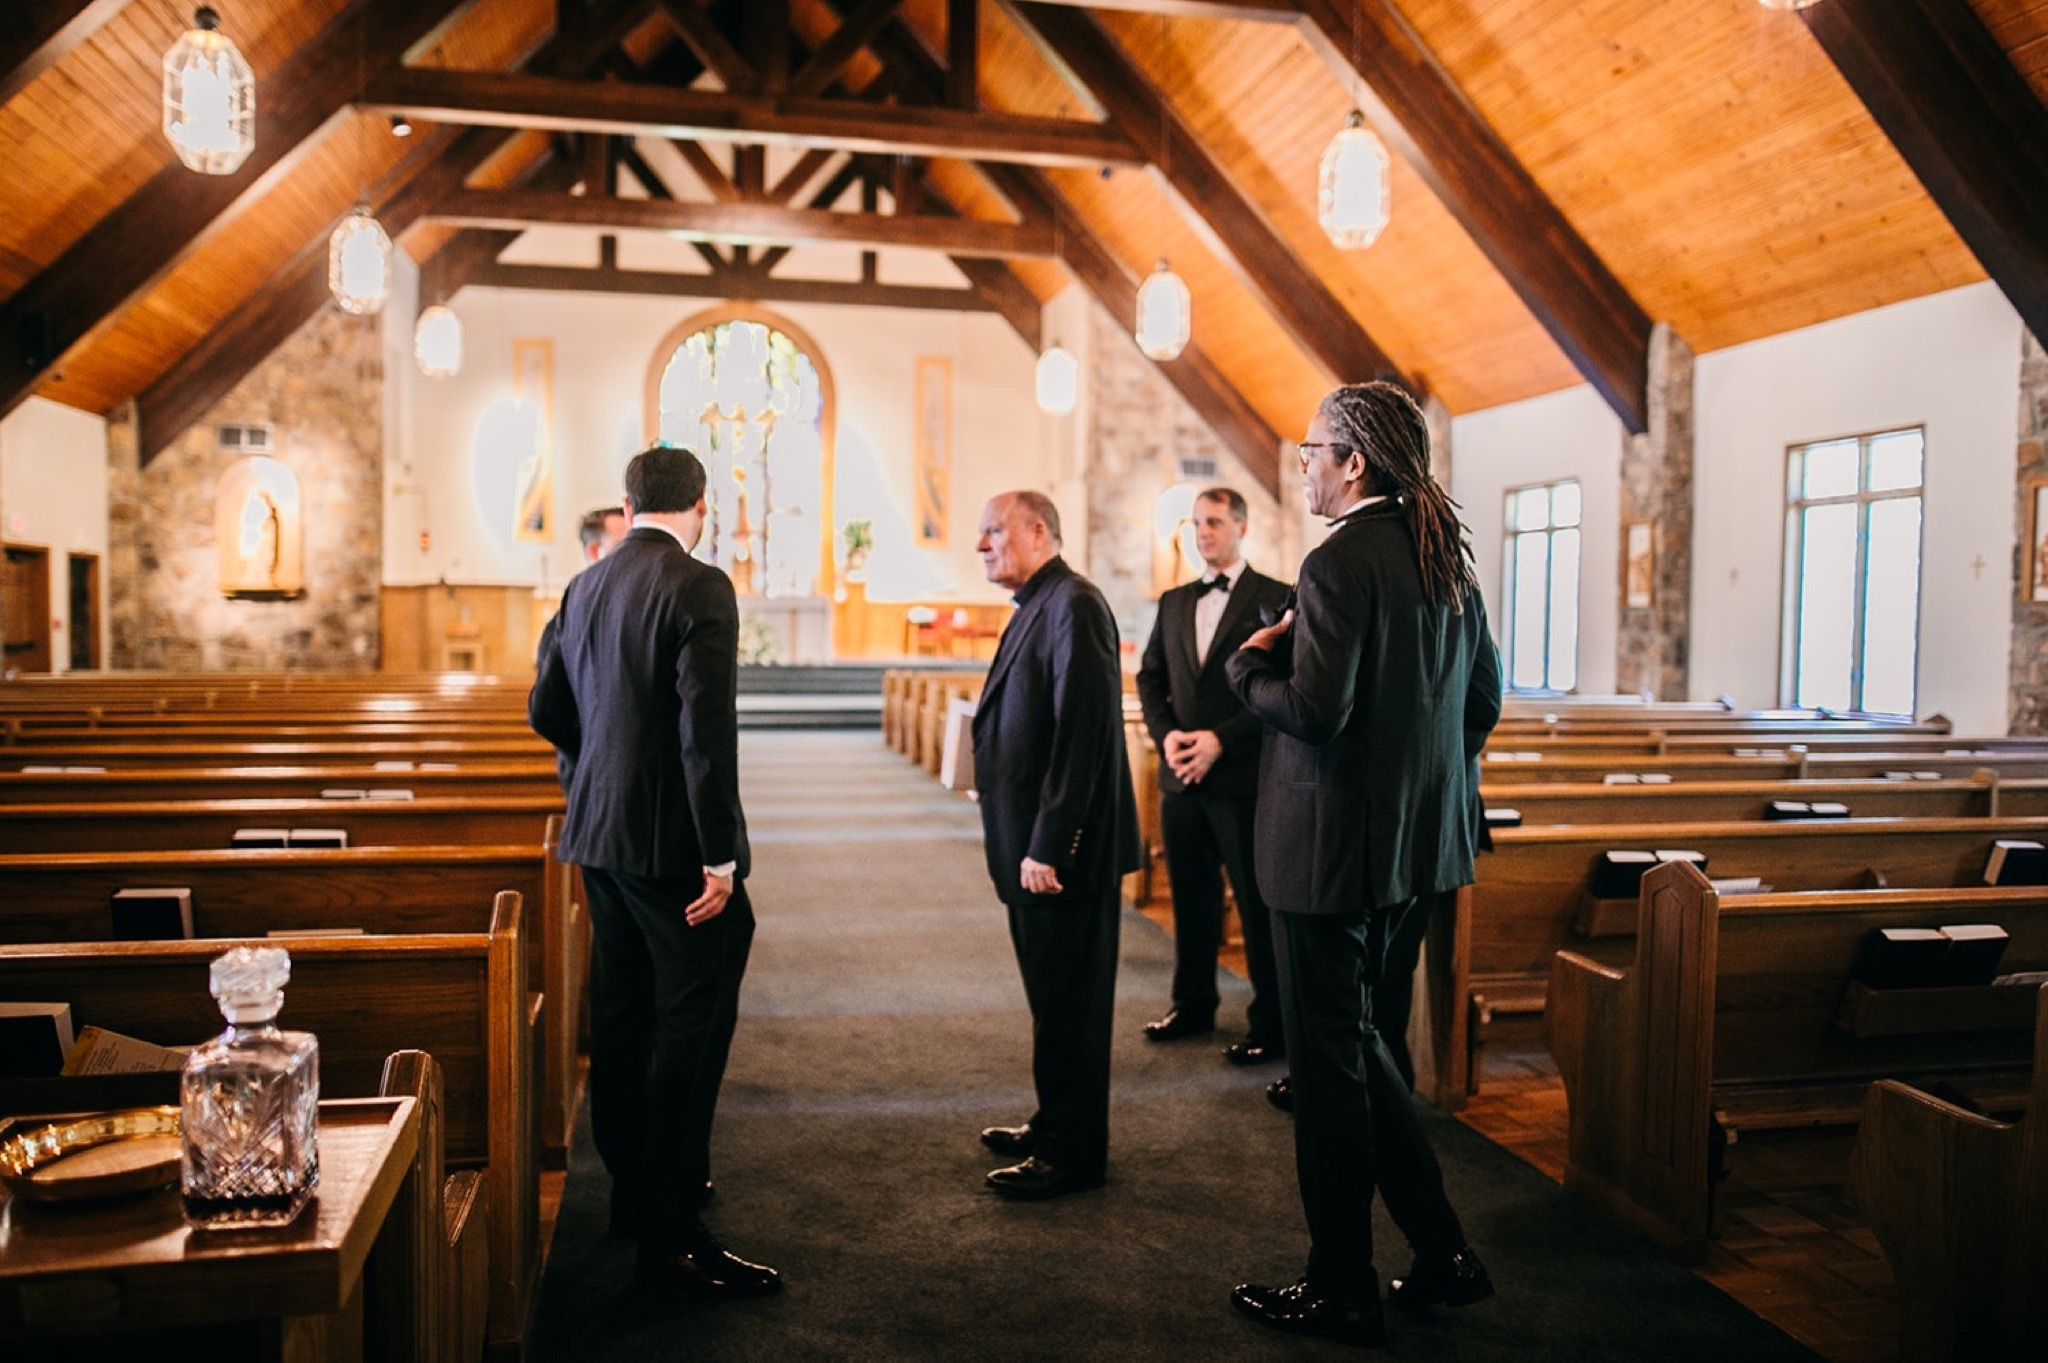 men in black tuxes stand between wooden pews under the peaked wooden roof of a church